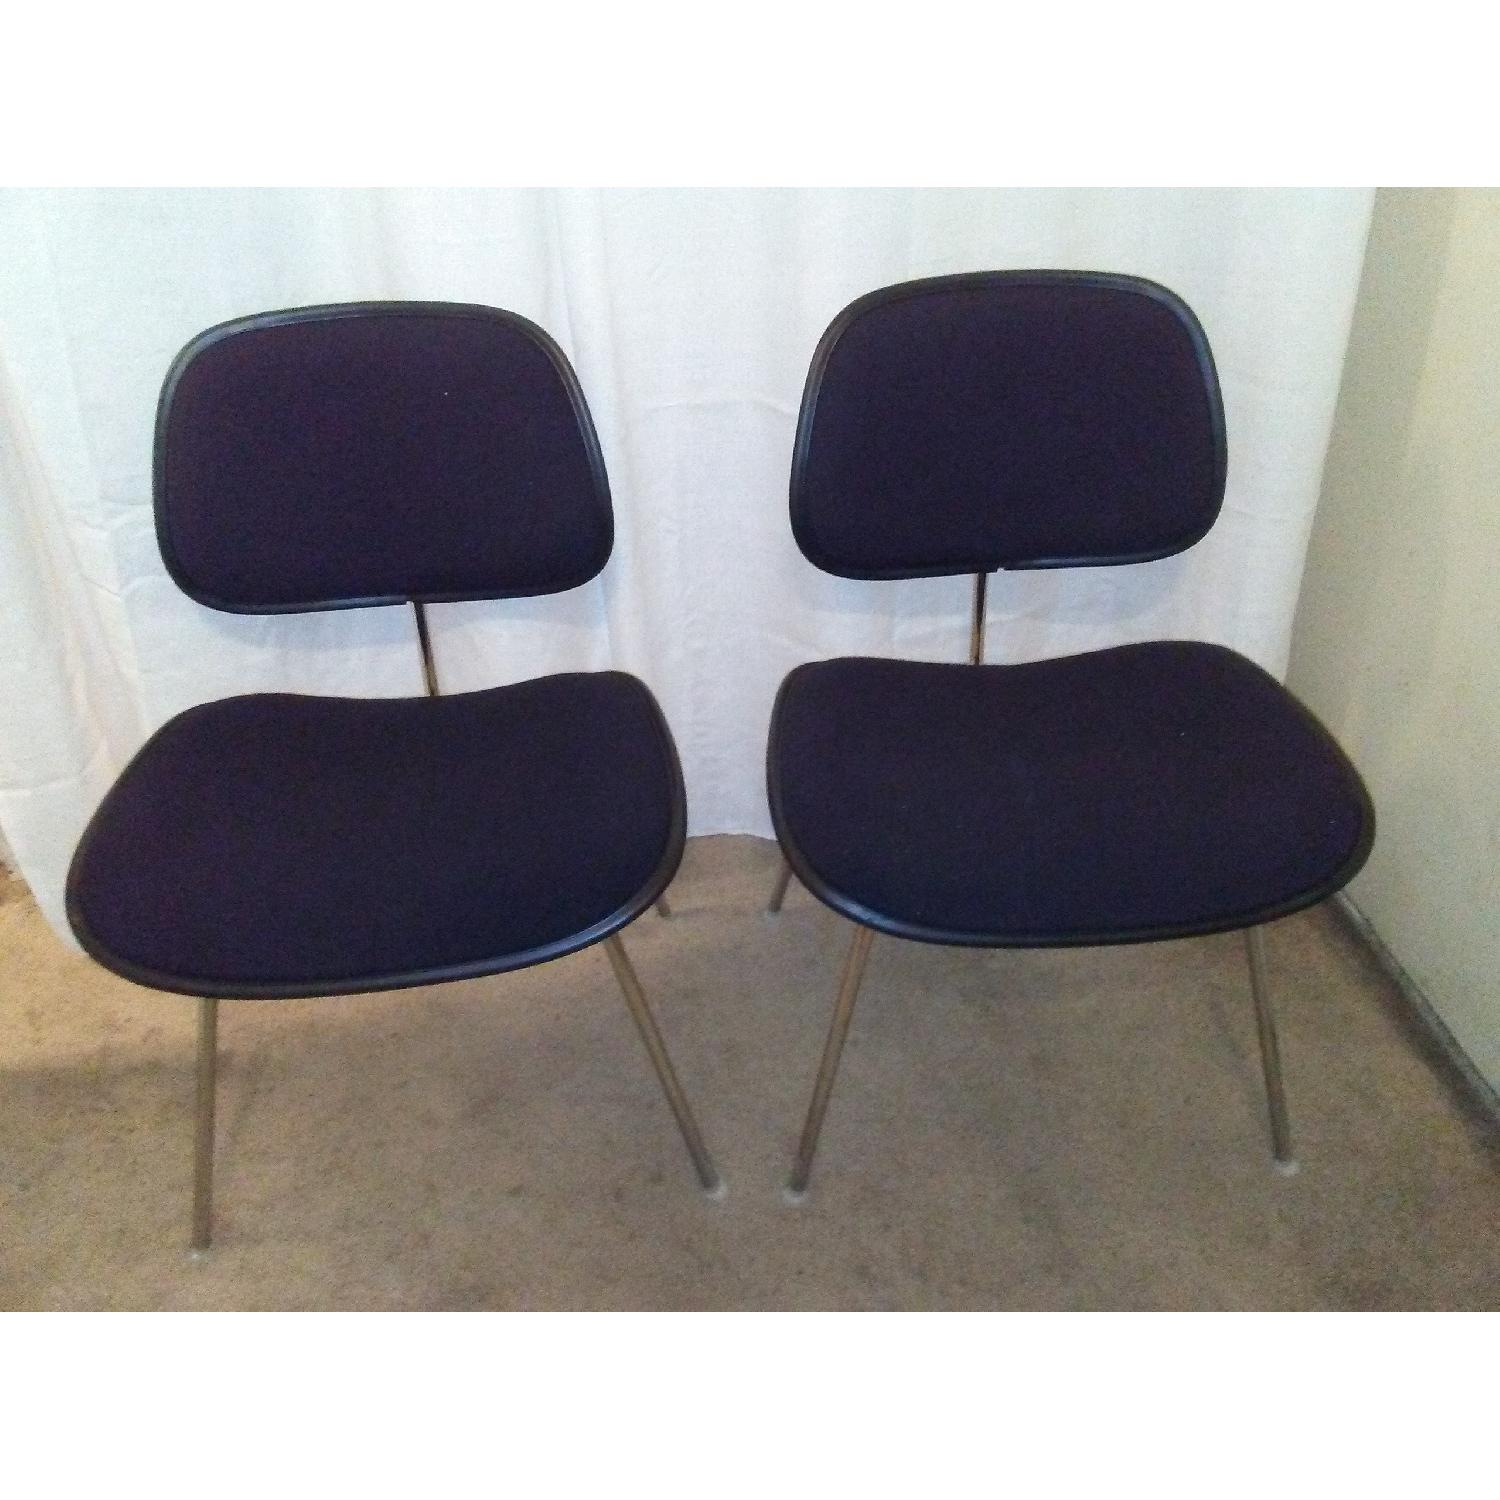 Herman Miller c.1992 Charles Eames Dining/Accent Chairs - image-3